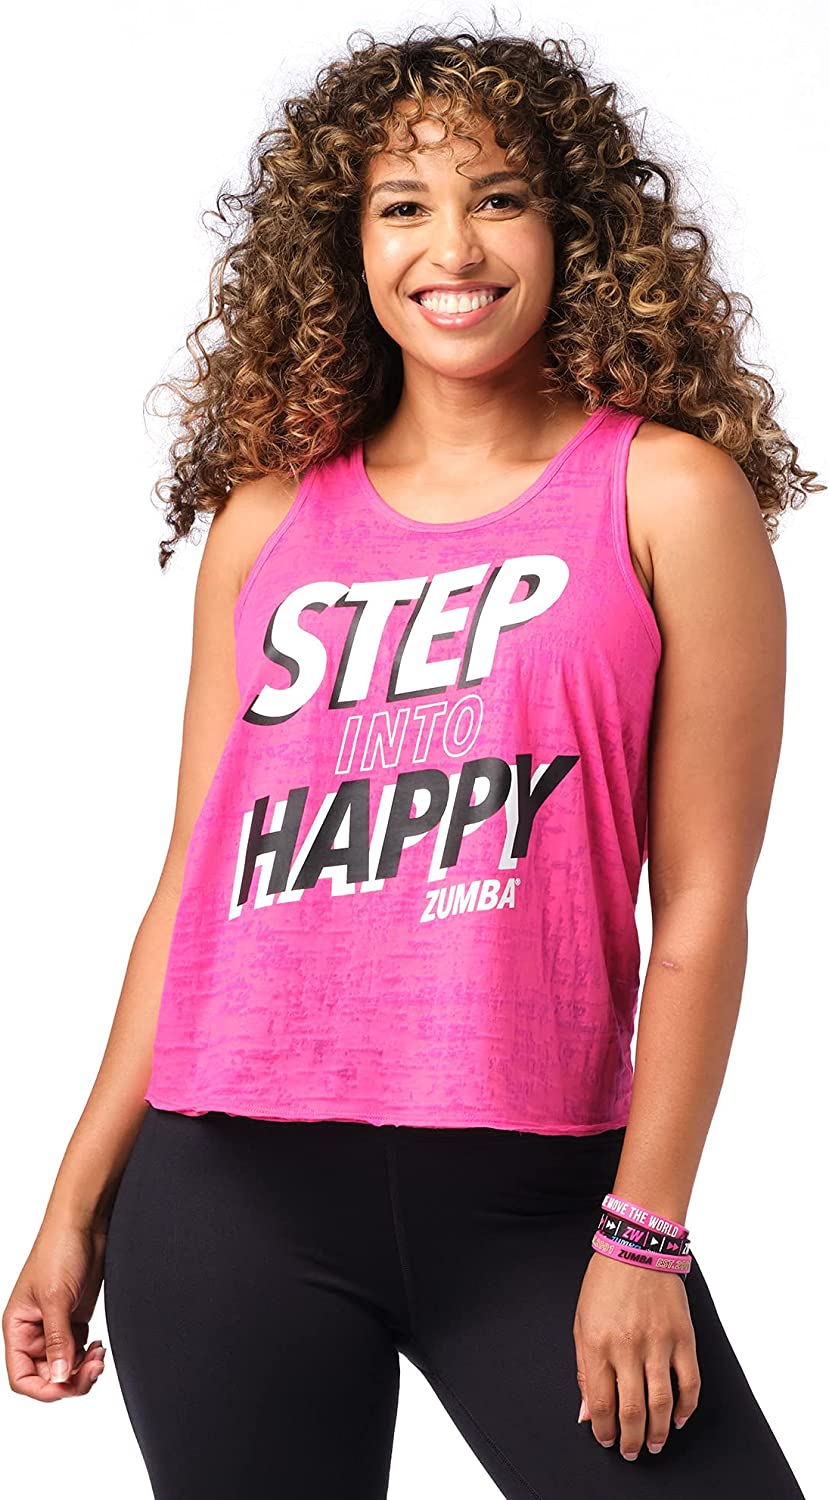 Zumba Burnout Dance Workout Graphic Print Fitness Tank Tops for Women